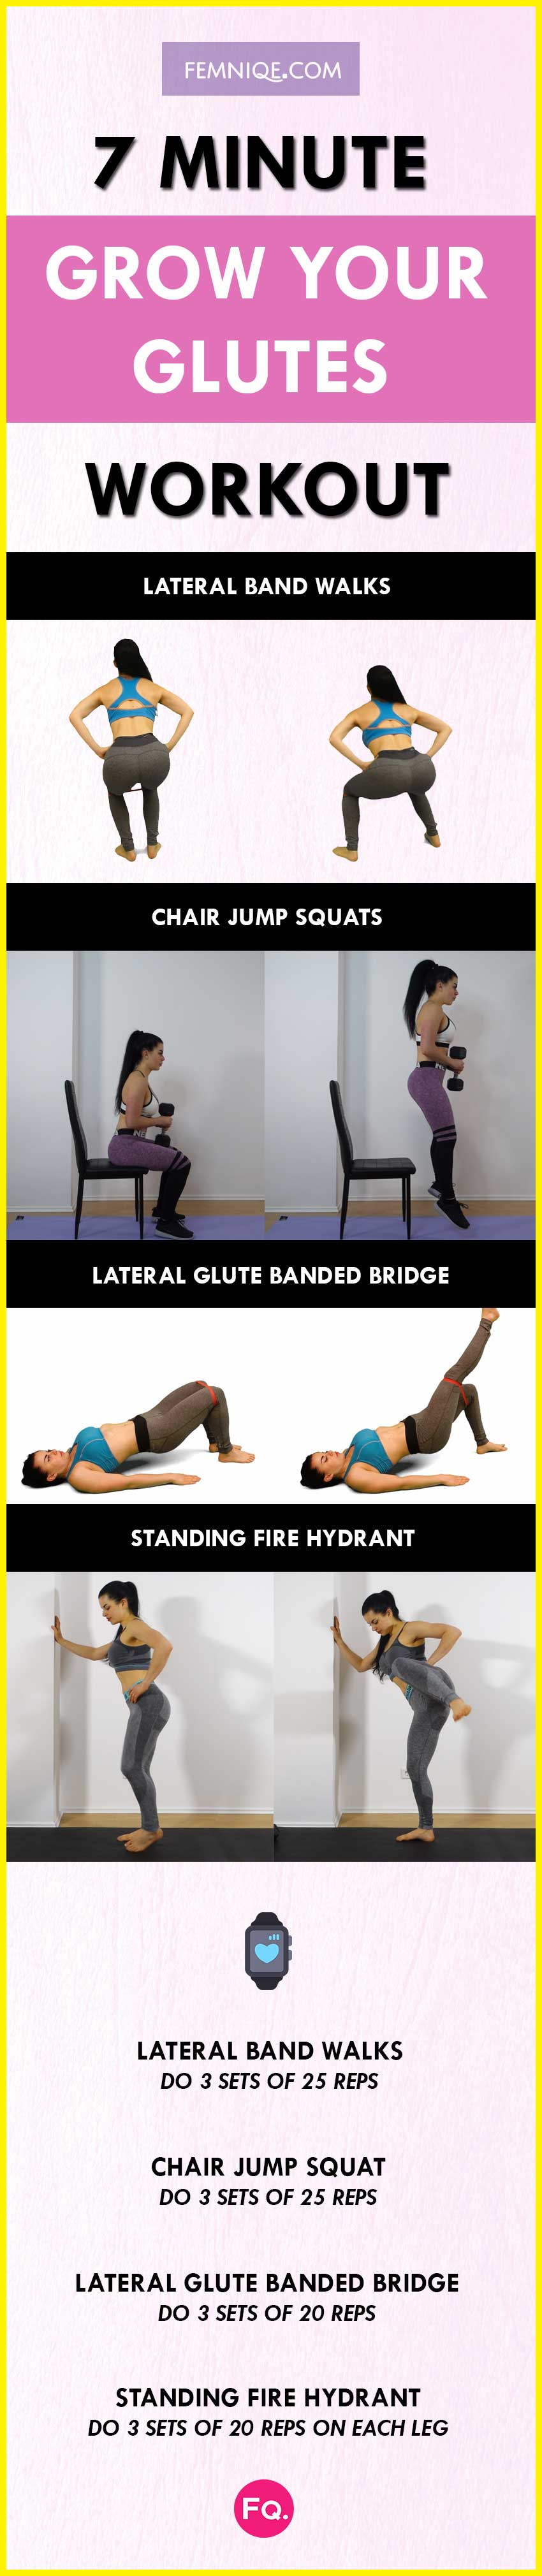 how to get a bigger buttocks in a week workout plan